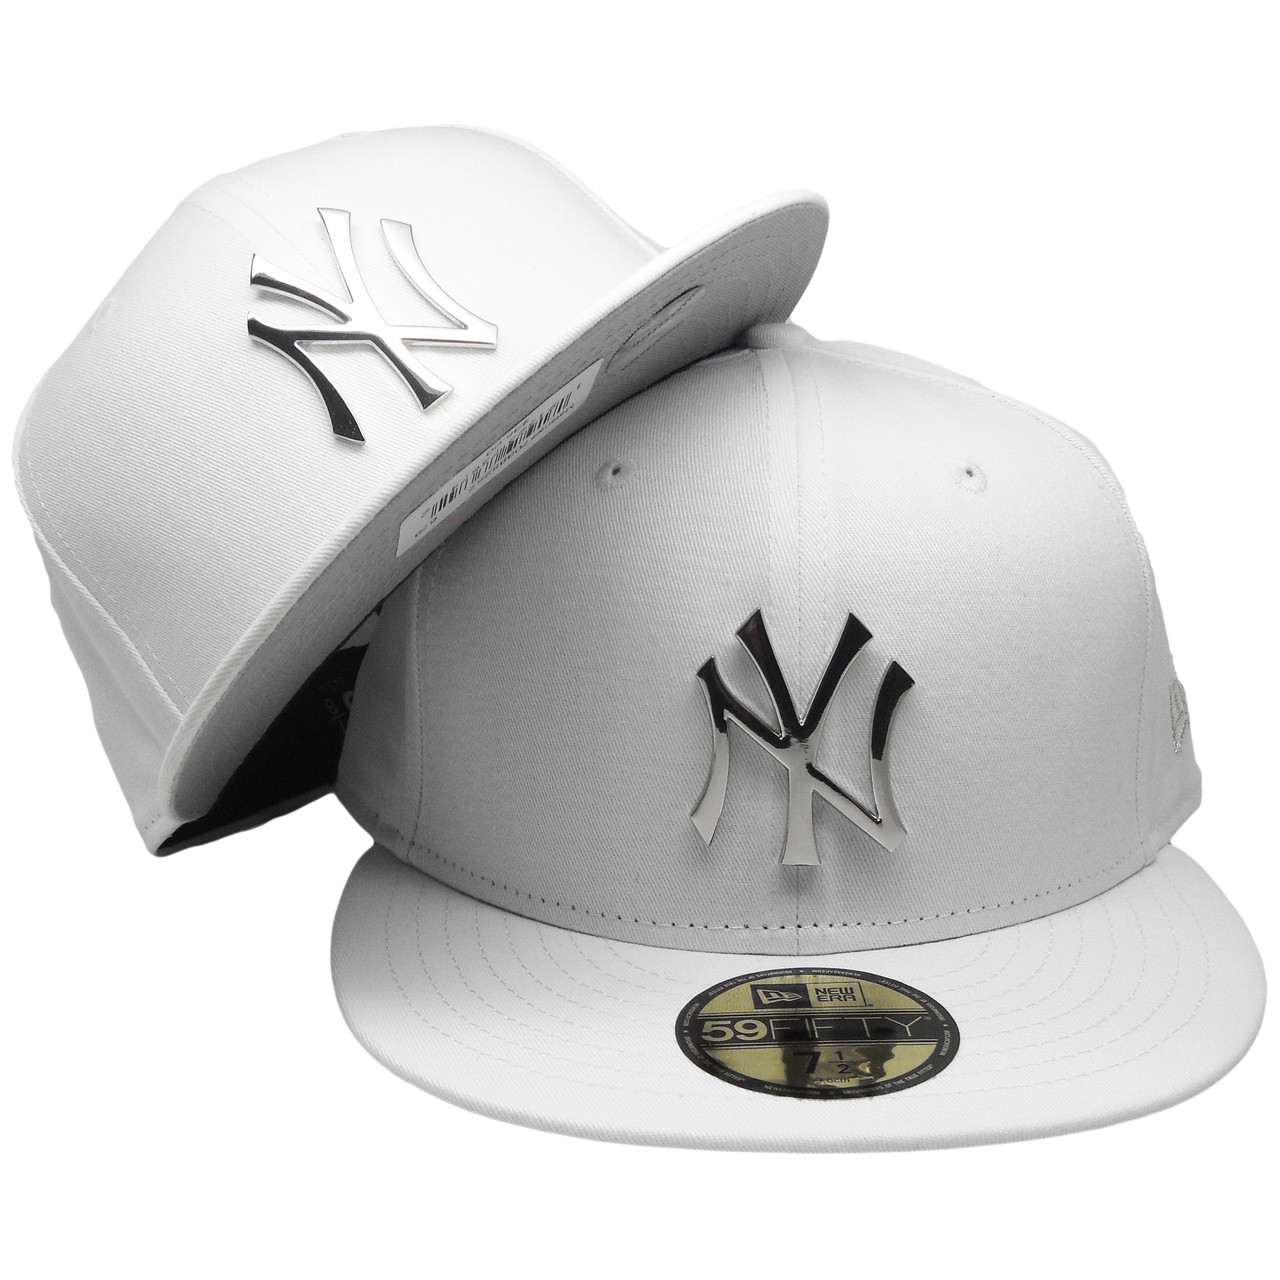 New York Yankees New Era Custom 59Fifty Fitted Hat - White, Silver Badge